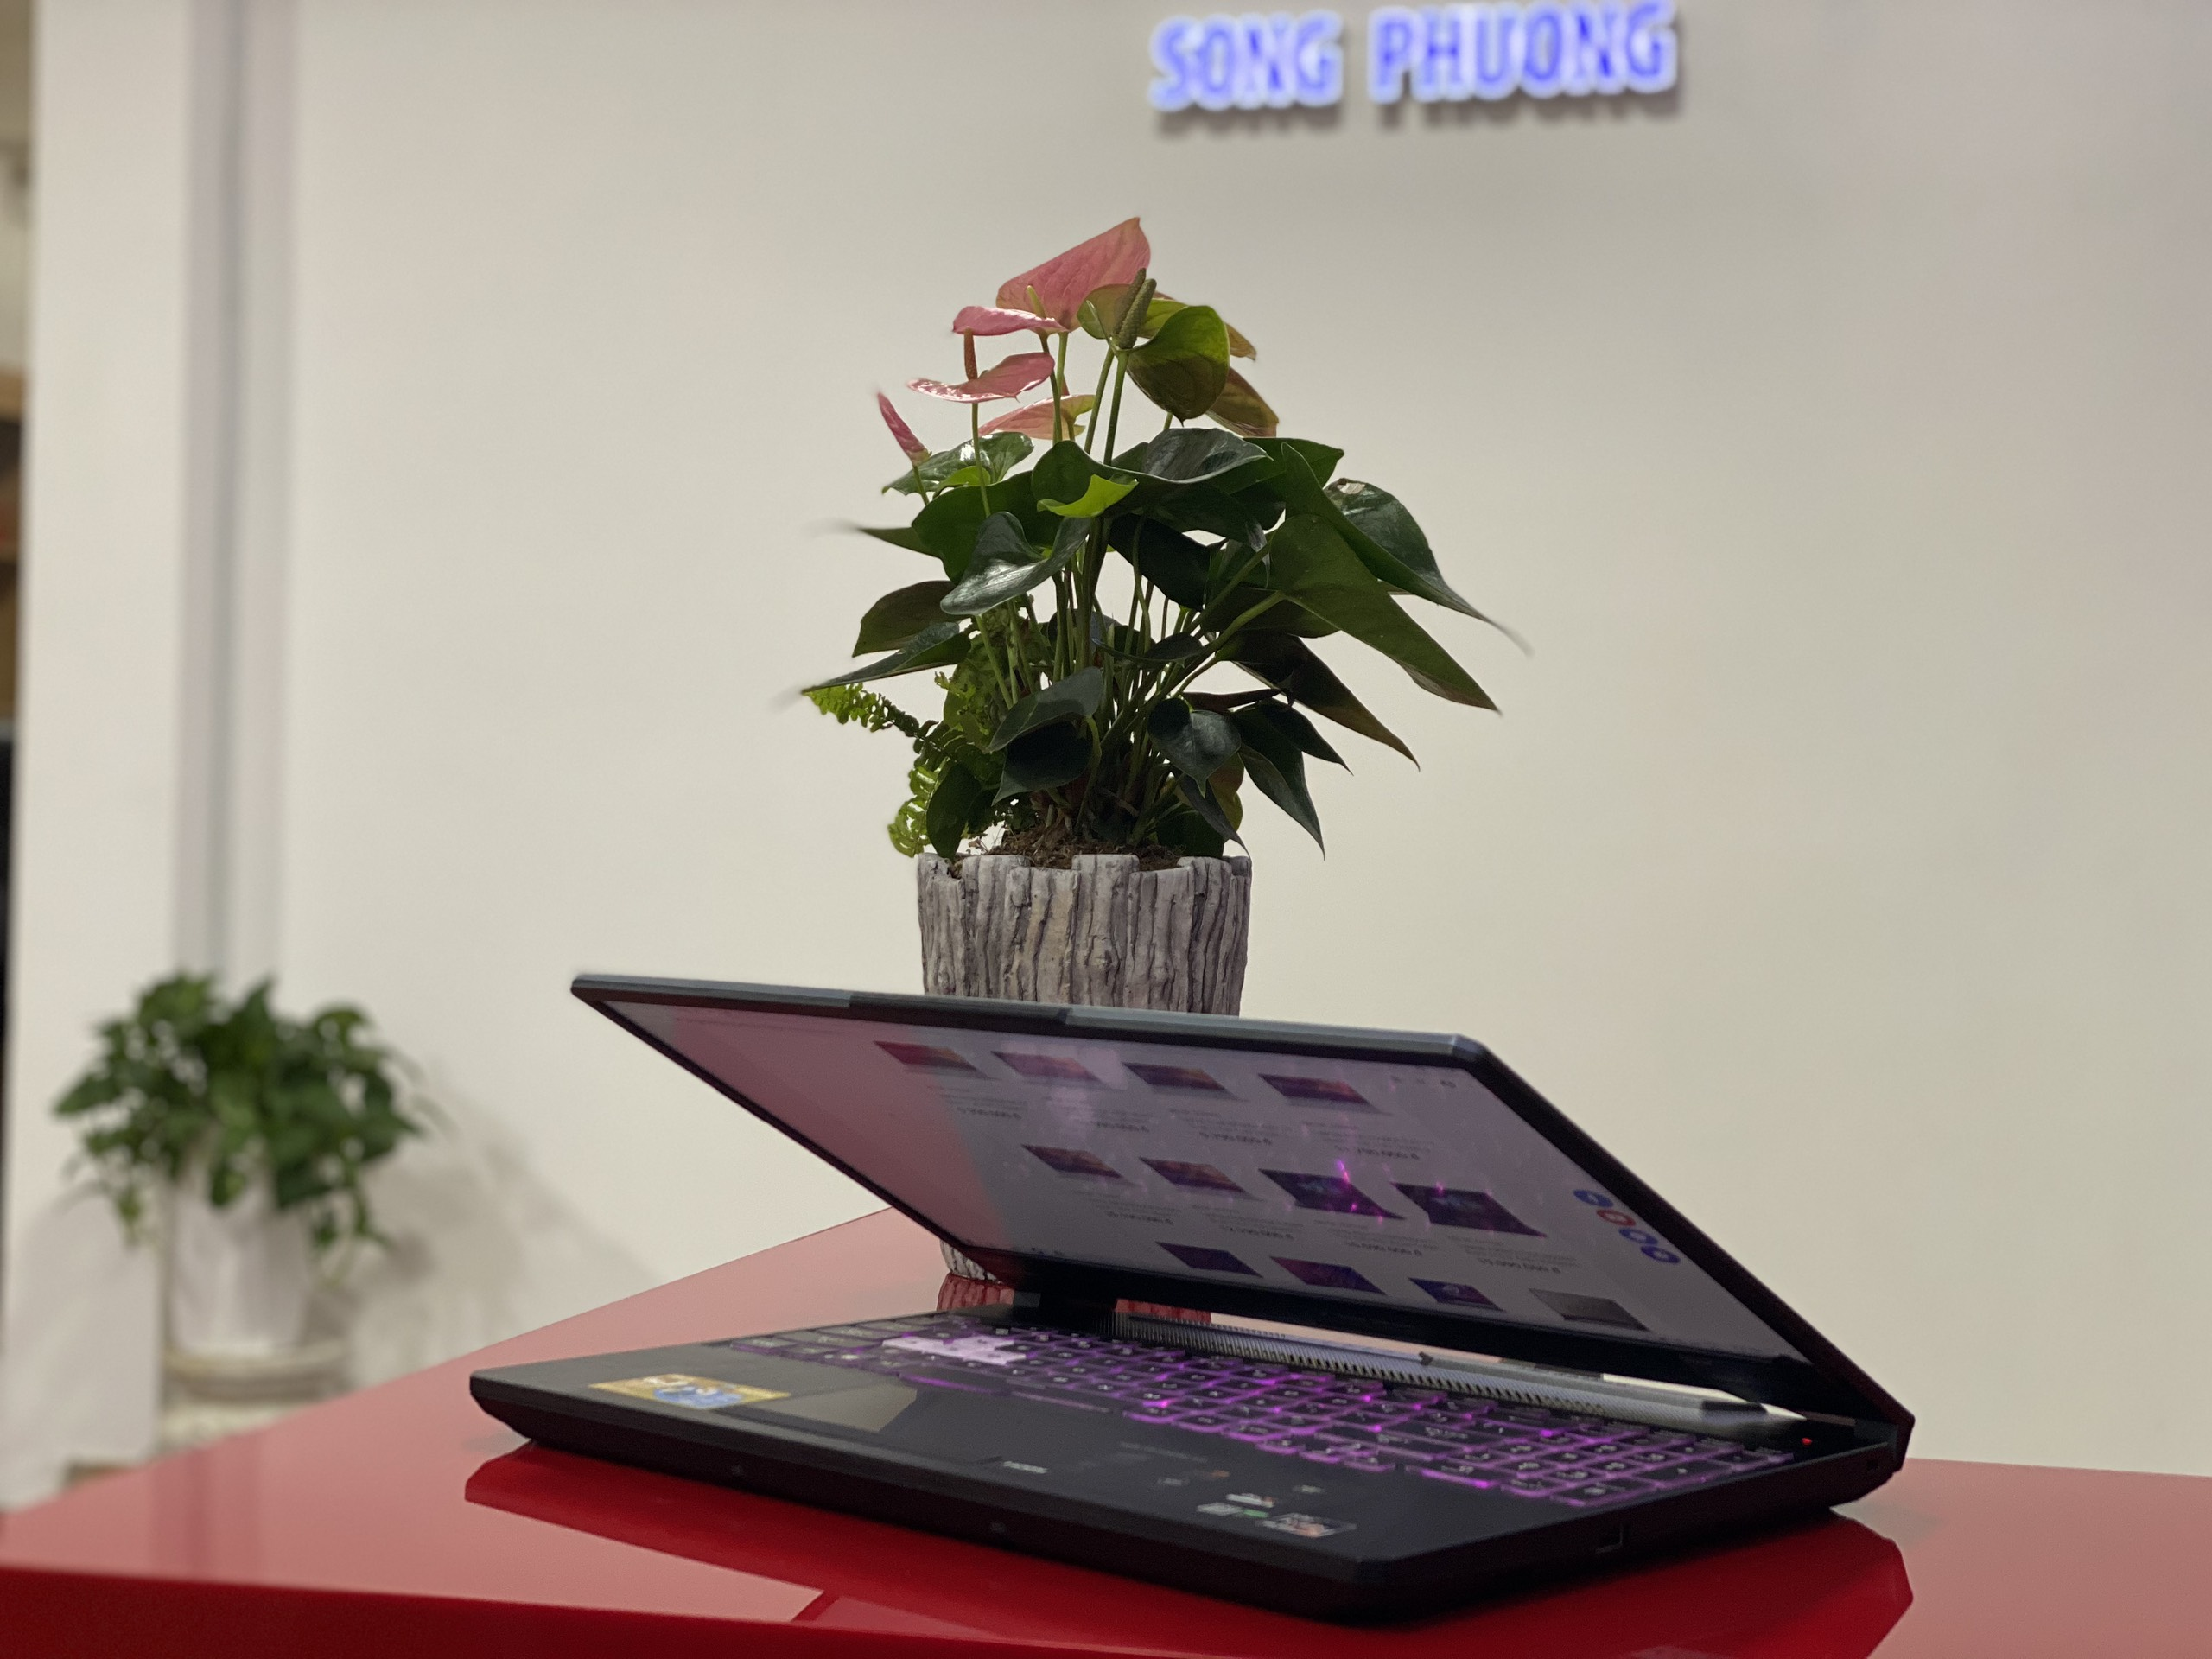 2. Laptop ASUS TUF GAMING A15 FA506IH-AL018T _songphuong.vn